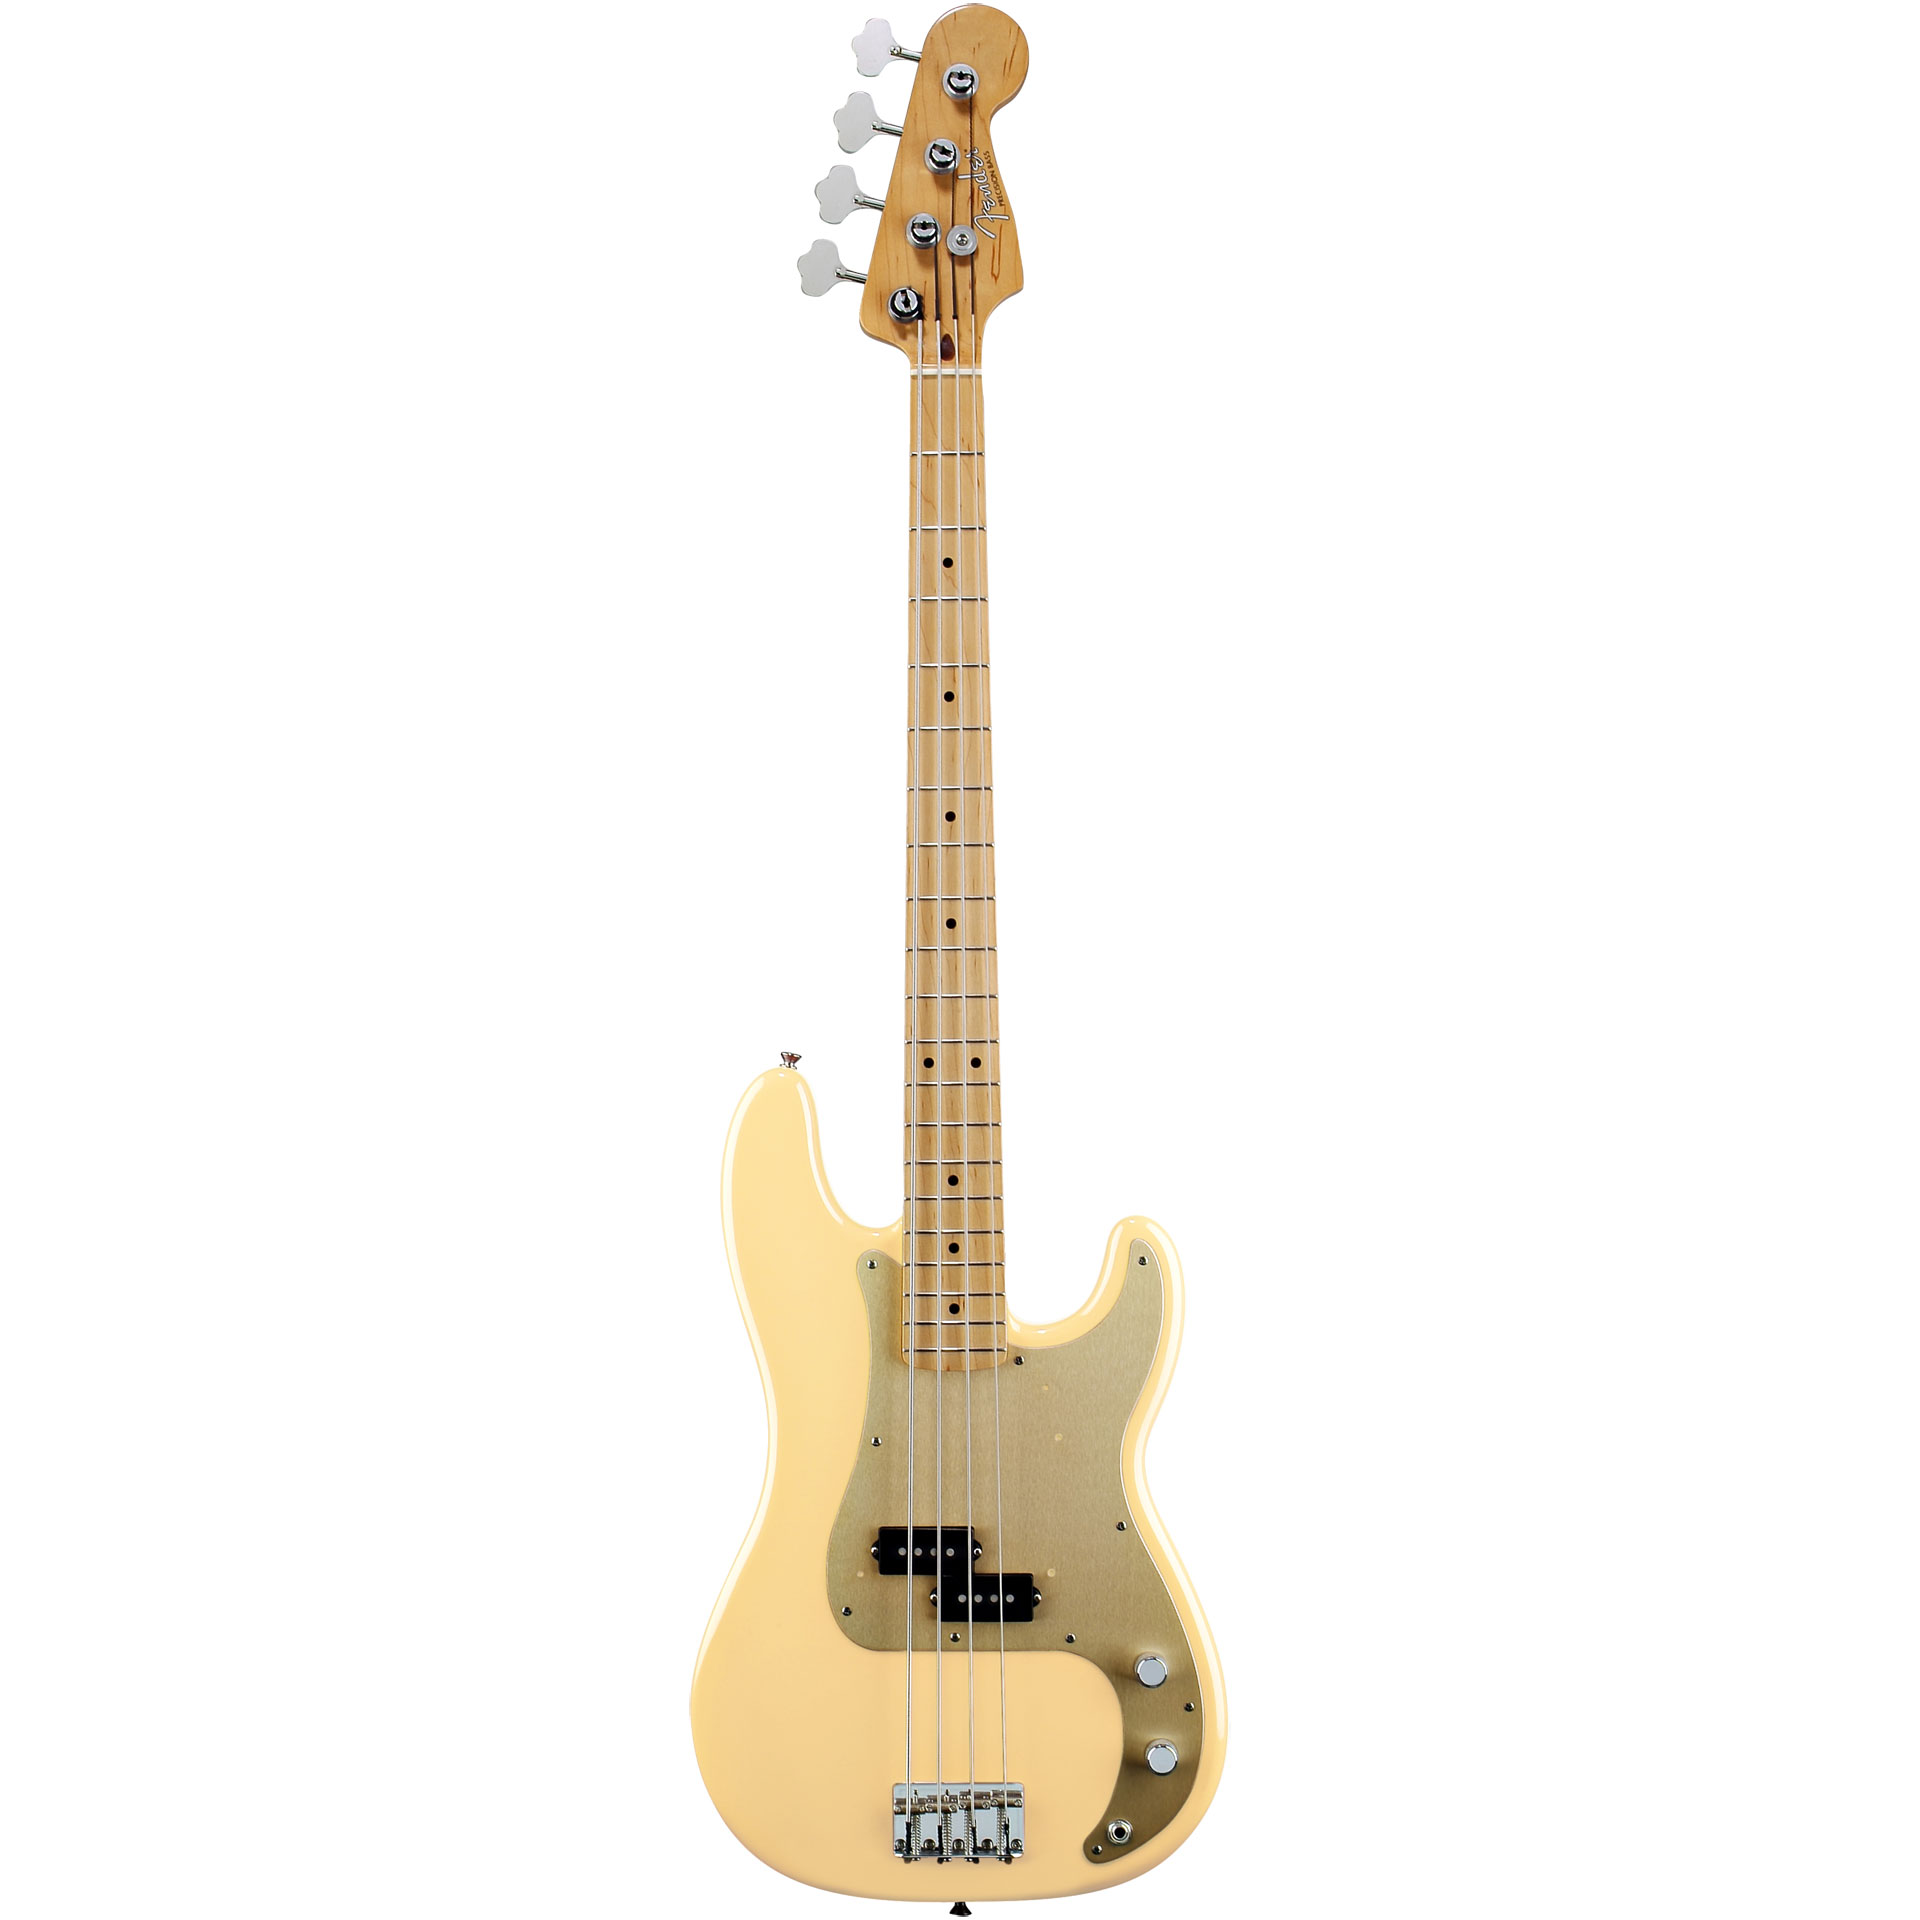 Fender classic series 39 50s precision hb electric bass guitar for Classic house bass